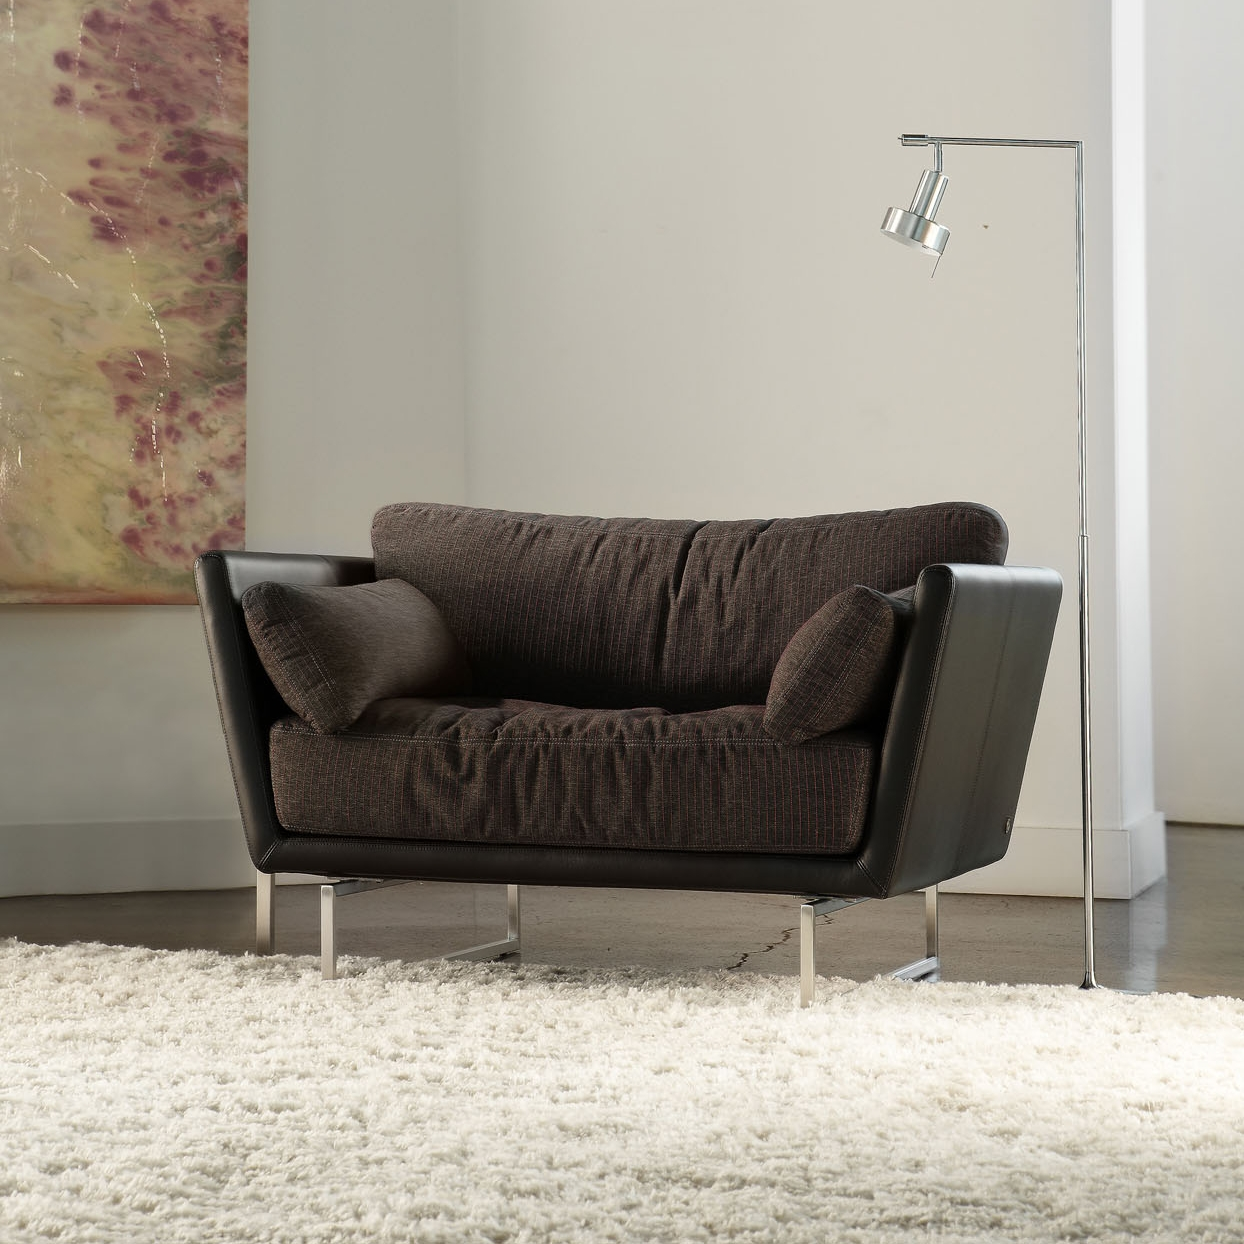 Sofas & Sectionals | Modern Seating | Contemporary Design Intended For Sofas And Sectionals (View 2 of 20)